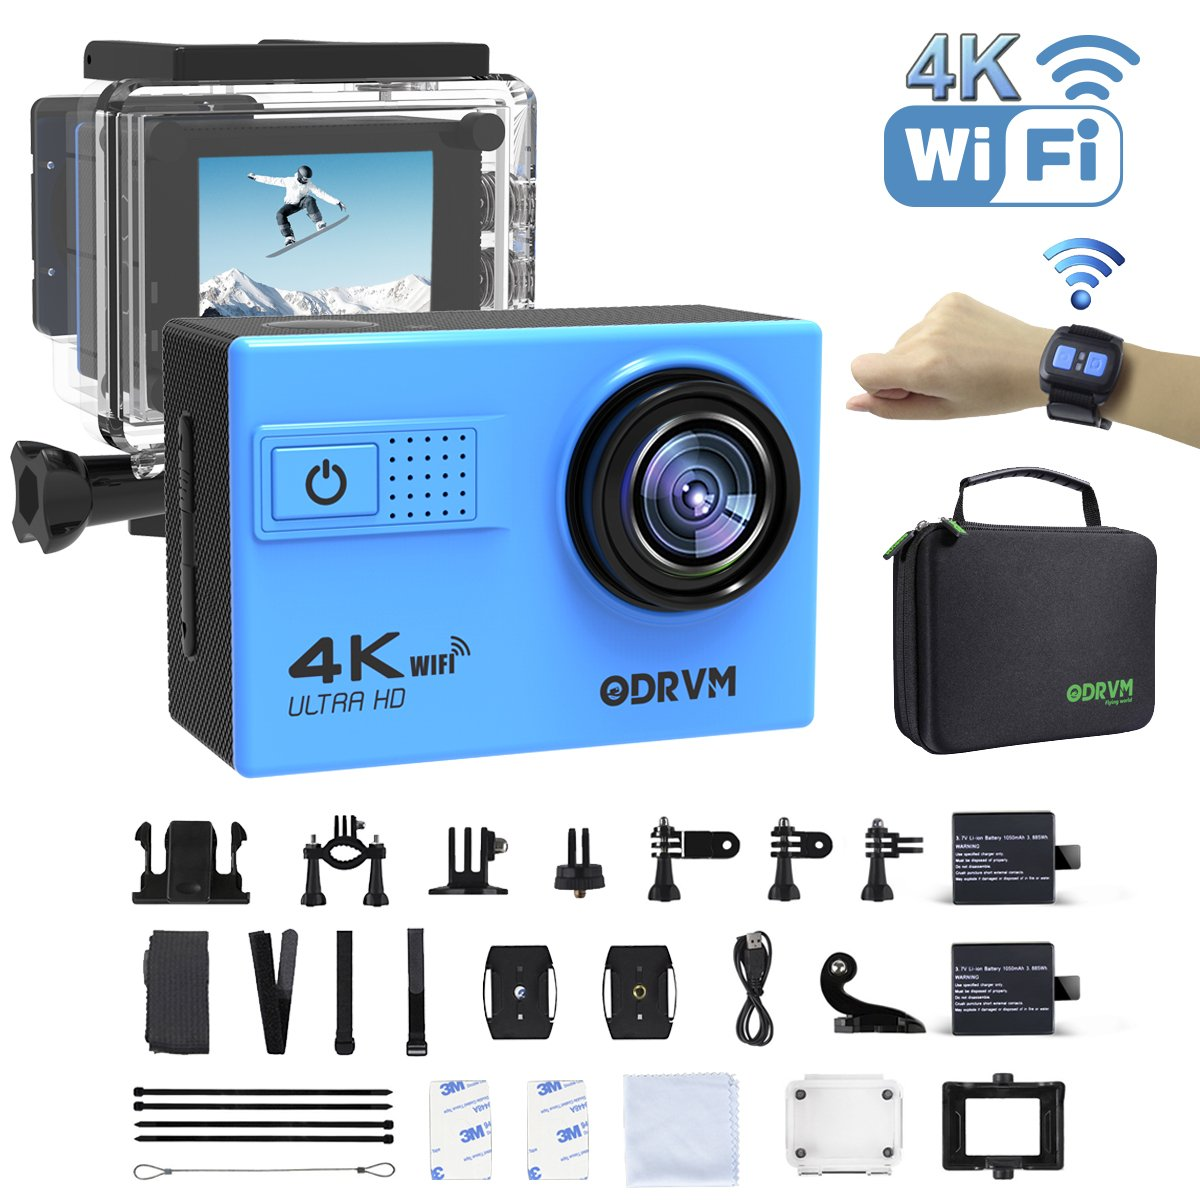 4K WIFI Action Camera Remote Waterproof 30m Underwater Camera Ultra HD 20MP Water Camera With 18 Accessories Kits for Diving,Surfing,Snorkeling,Skiing,Motorcycle,Kids and Water Sports